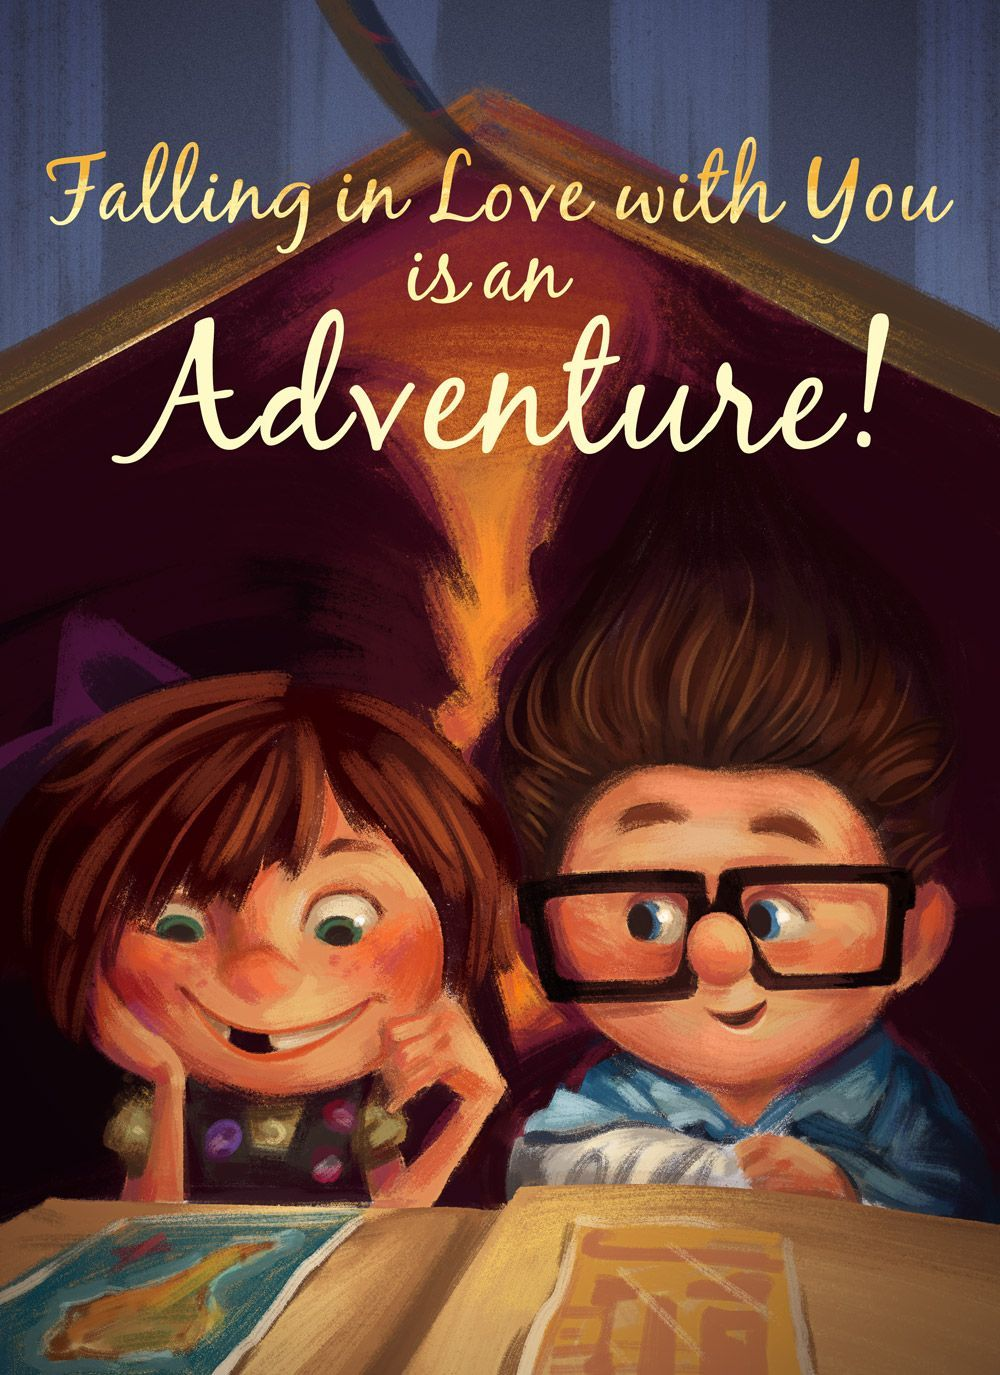 #valentines #adventure #adorable #falling #disney #cards #love #with #day #you #oh #my #up #in #isAdorable Disney Valentine's Day Cards Adorable Disney Valentine's Day Cards | Oh My Disney | UP! | Falling in love with you is an adventure.Adorable Disney Valentine's Day Cards | Oh My Disney | UP! | Falling in love with you is an adventure.